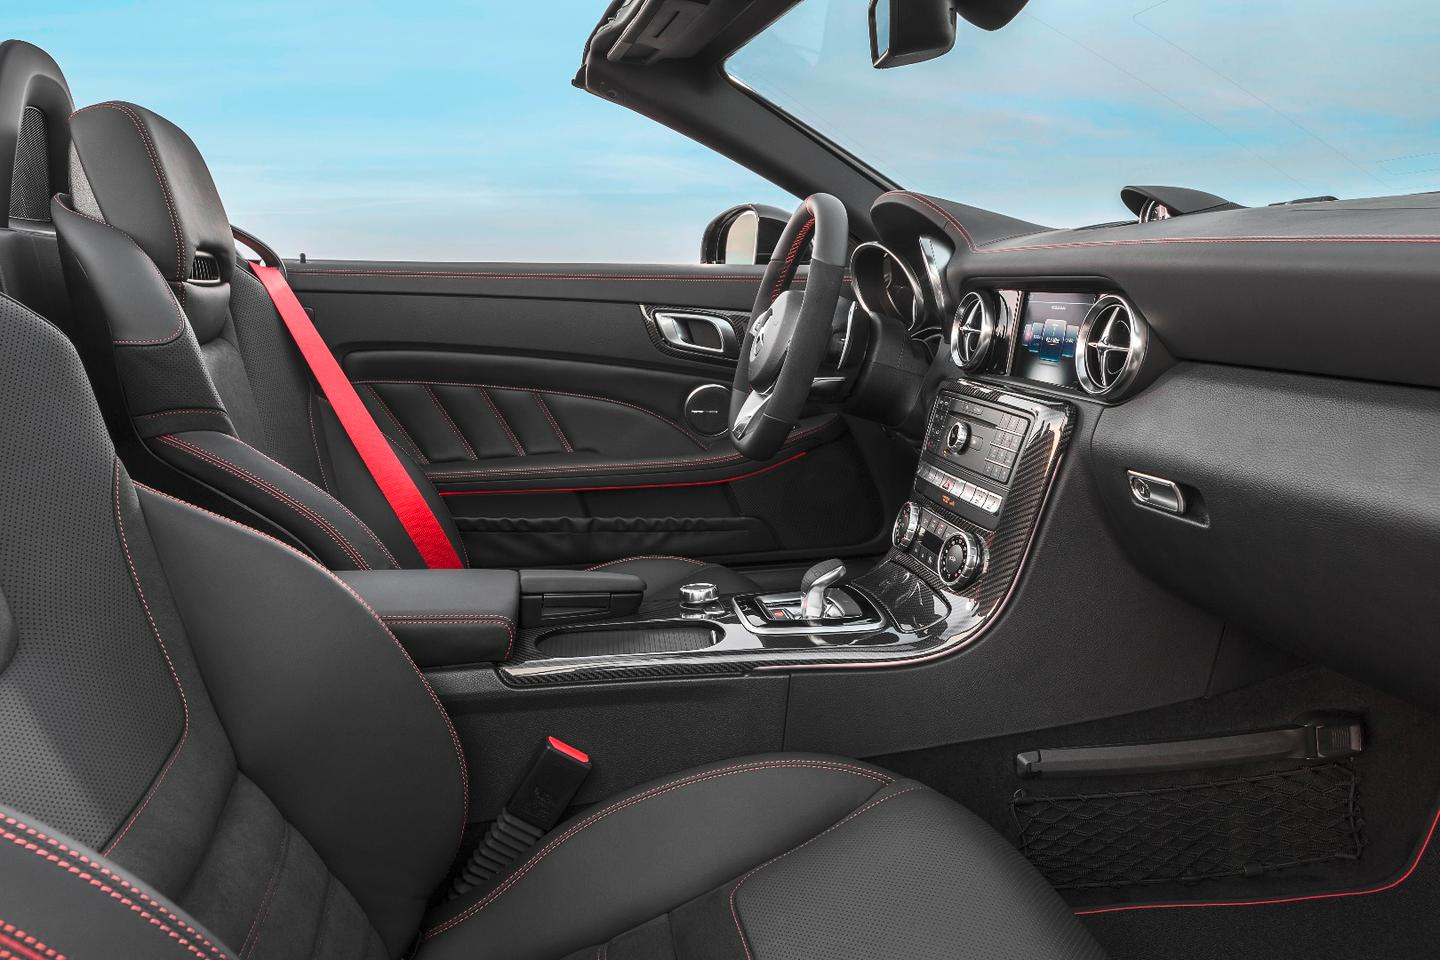 The redesigned interior of the new Mercedes Benz SLC